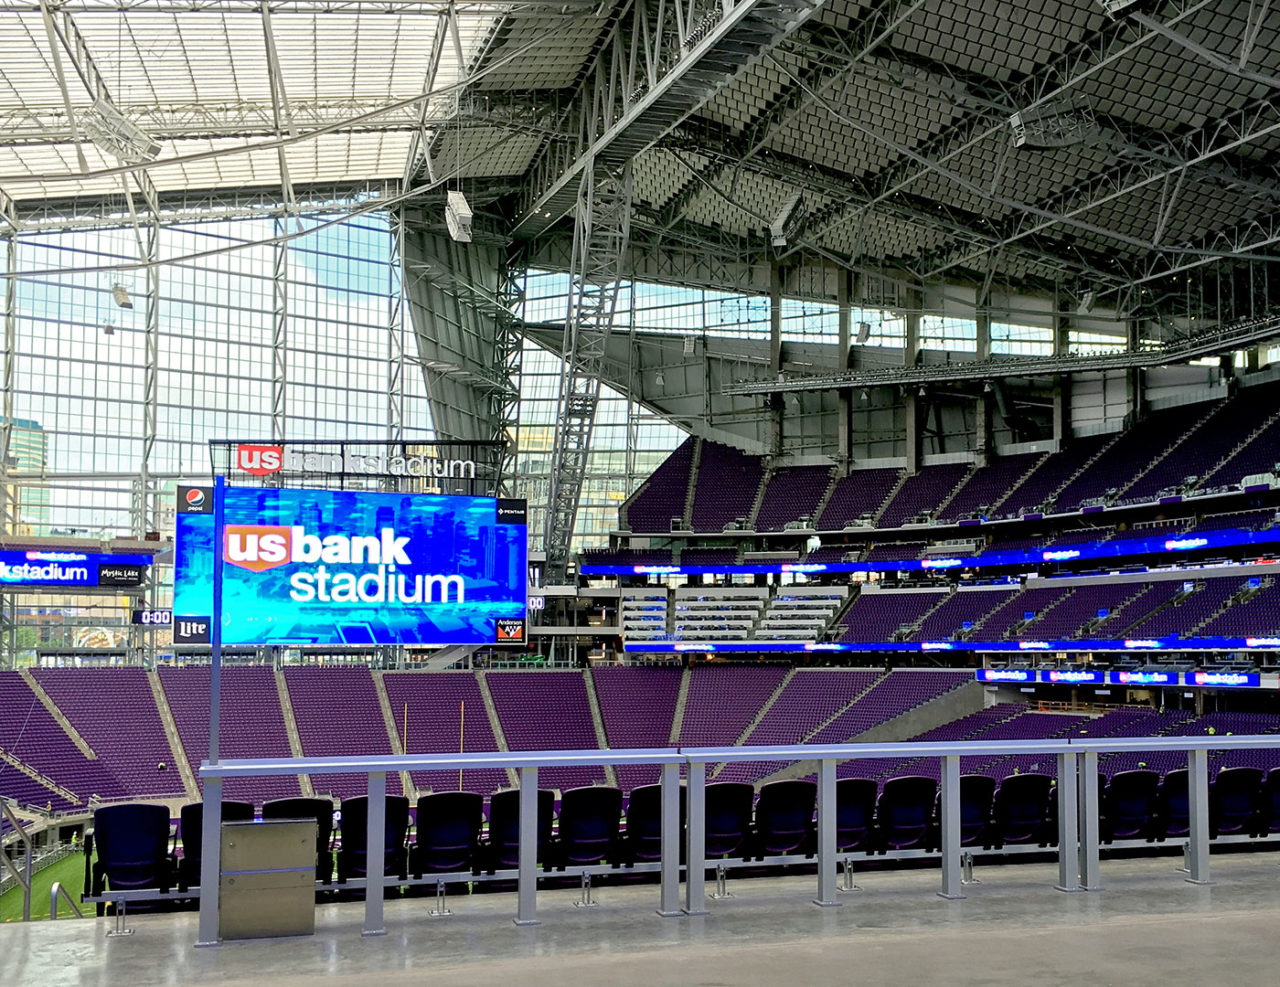 U. S. Bank Stadium Drinkrails